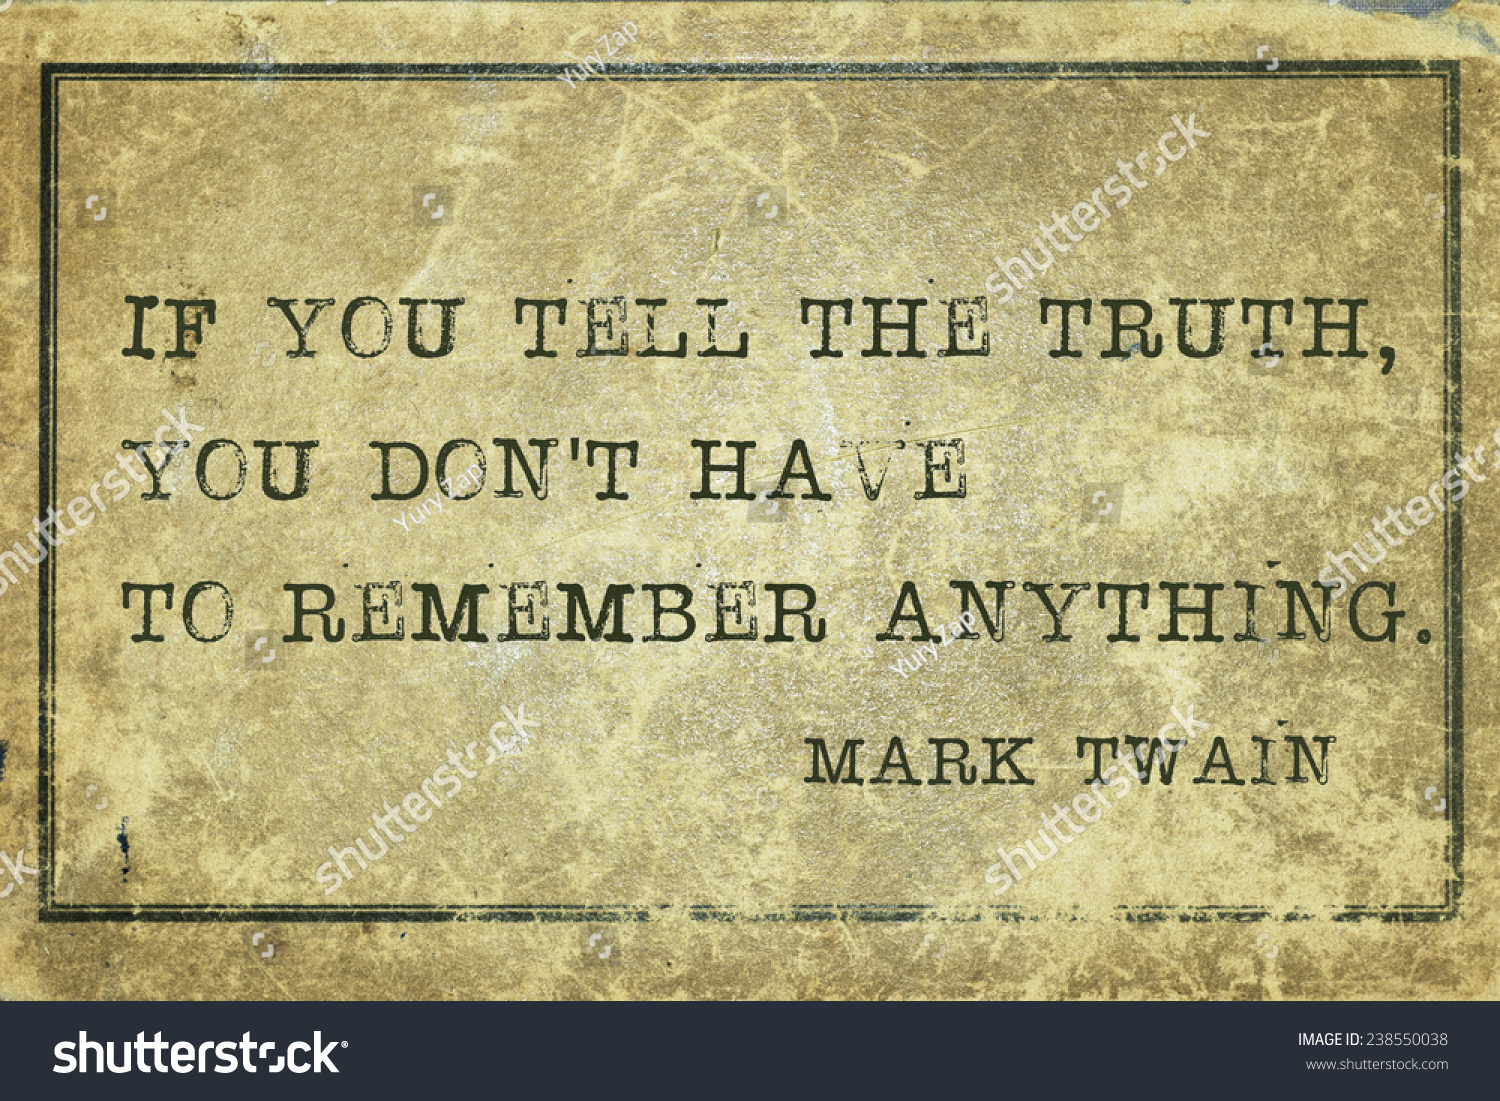 if you tell the truth  - famous Mark Twain quote printed on grunge vintage cardboard